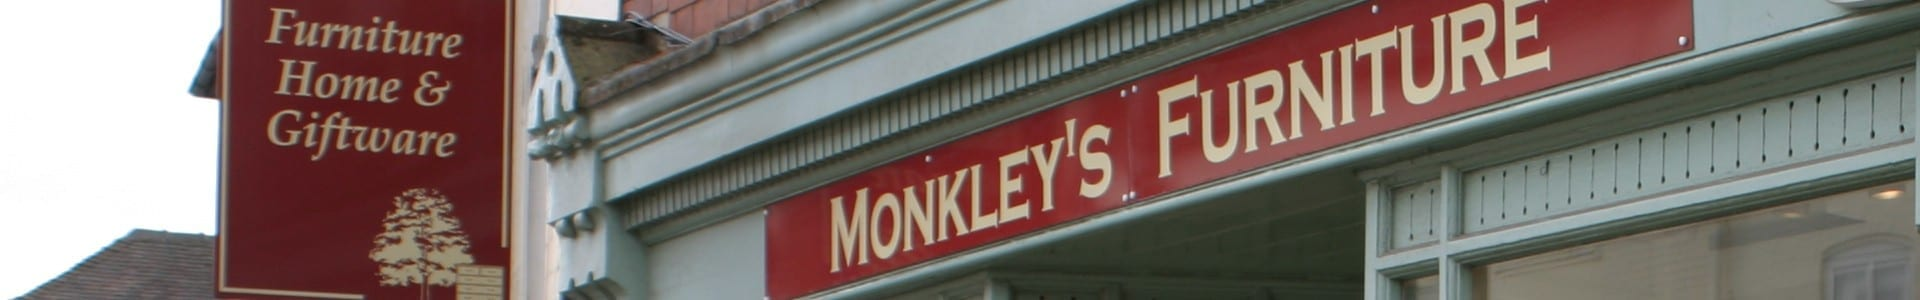 Monkleys Furniture